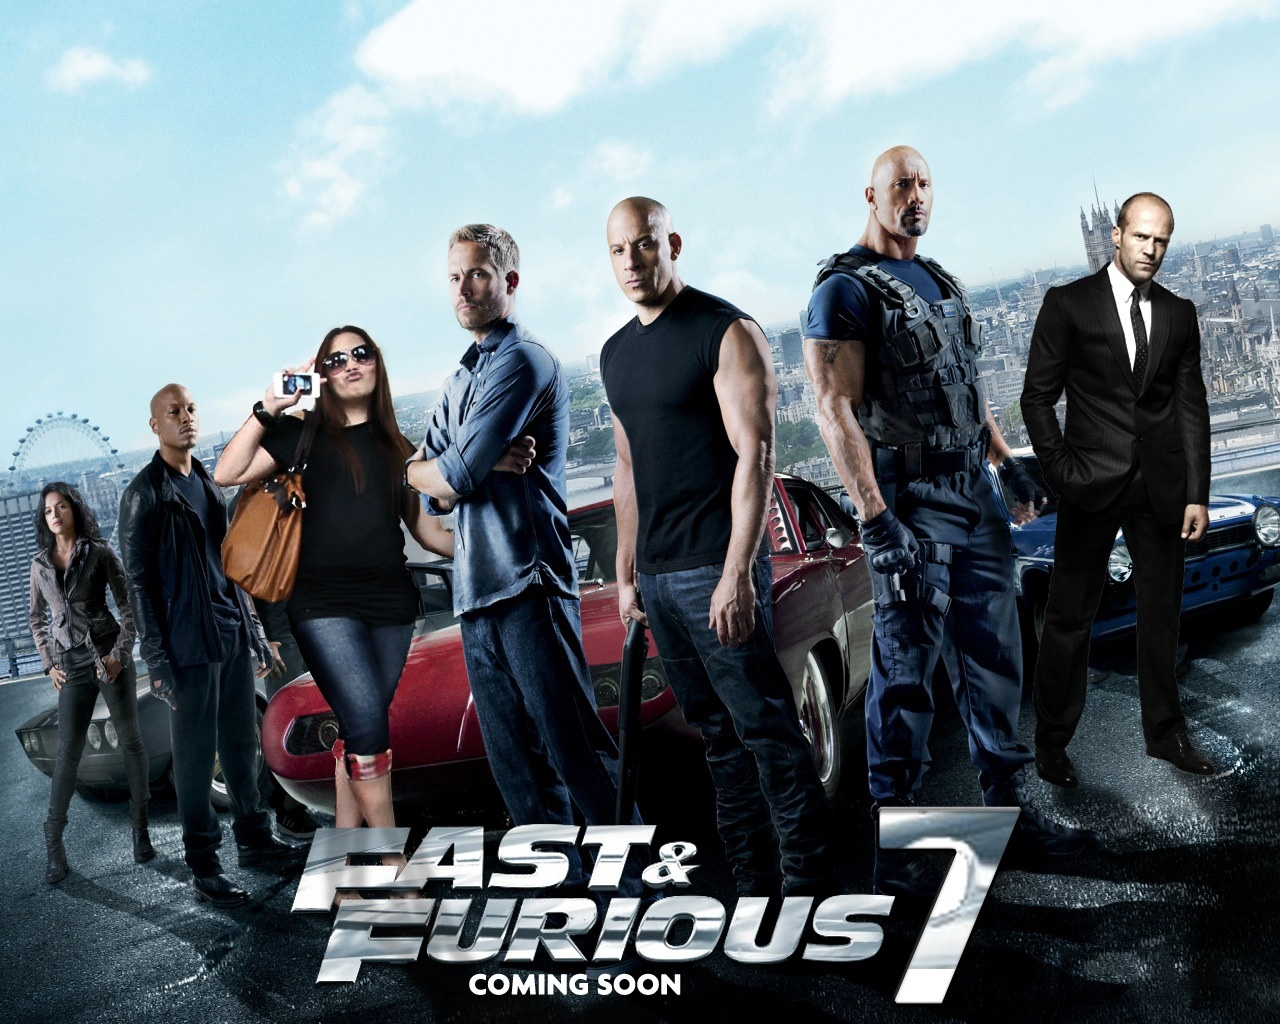 Amazon. Com: fast & furious 7 [4k uhd blu-ray + blu-ray] [2015.